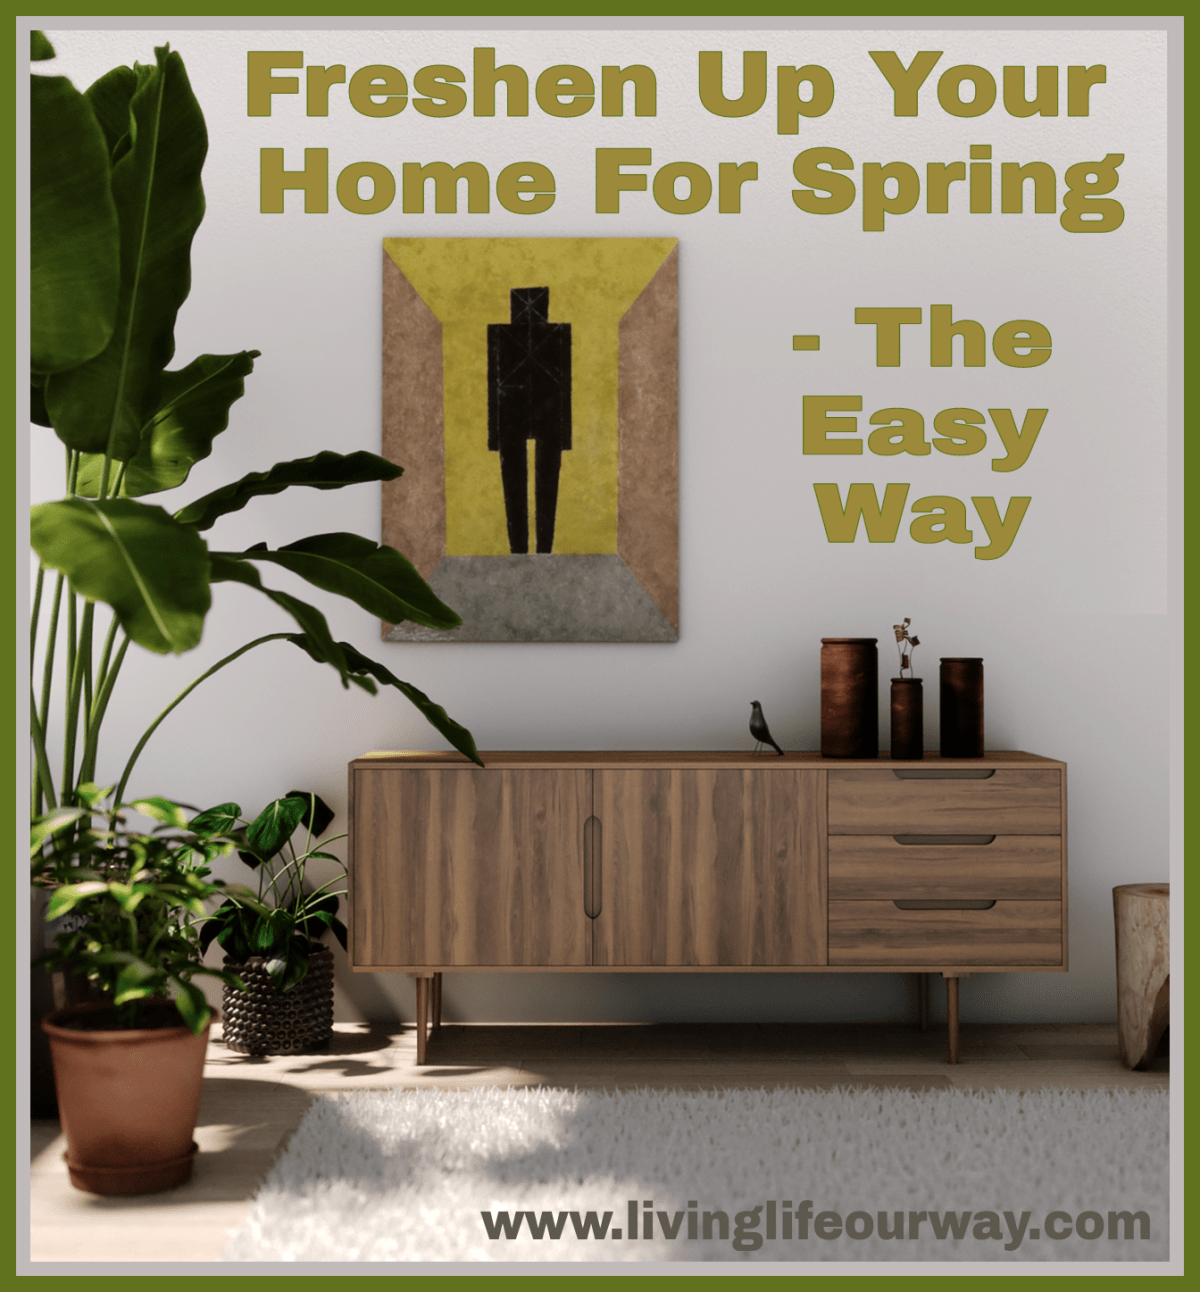 Freshen Up Your Home For Spring – The Easy Way